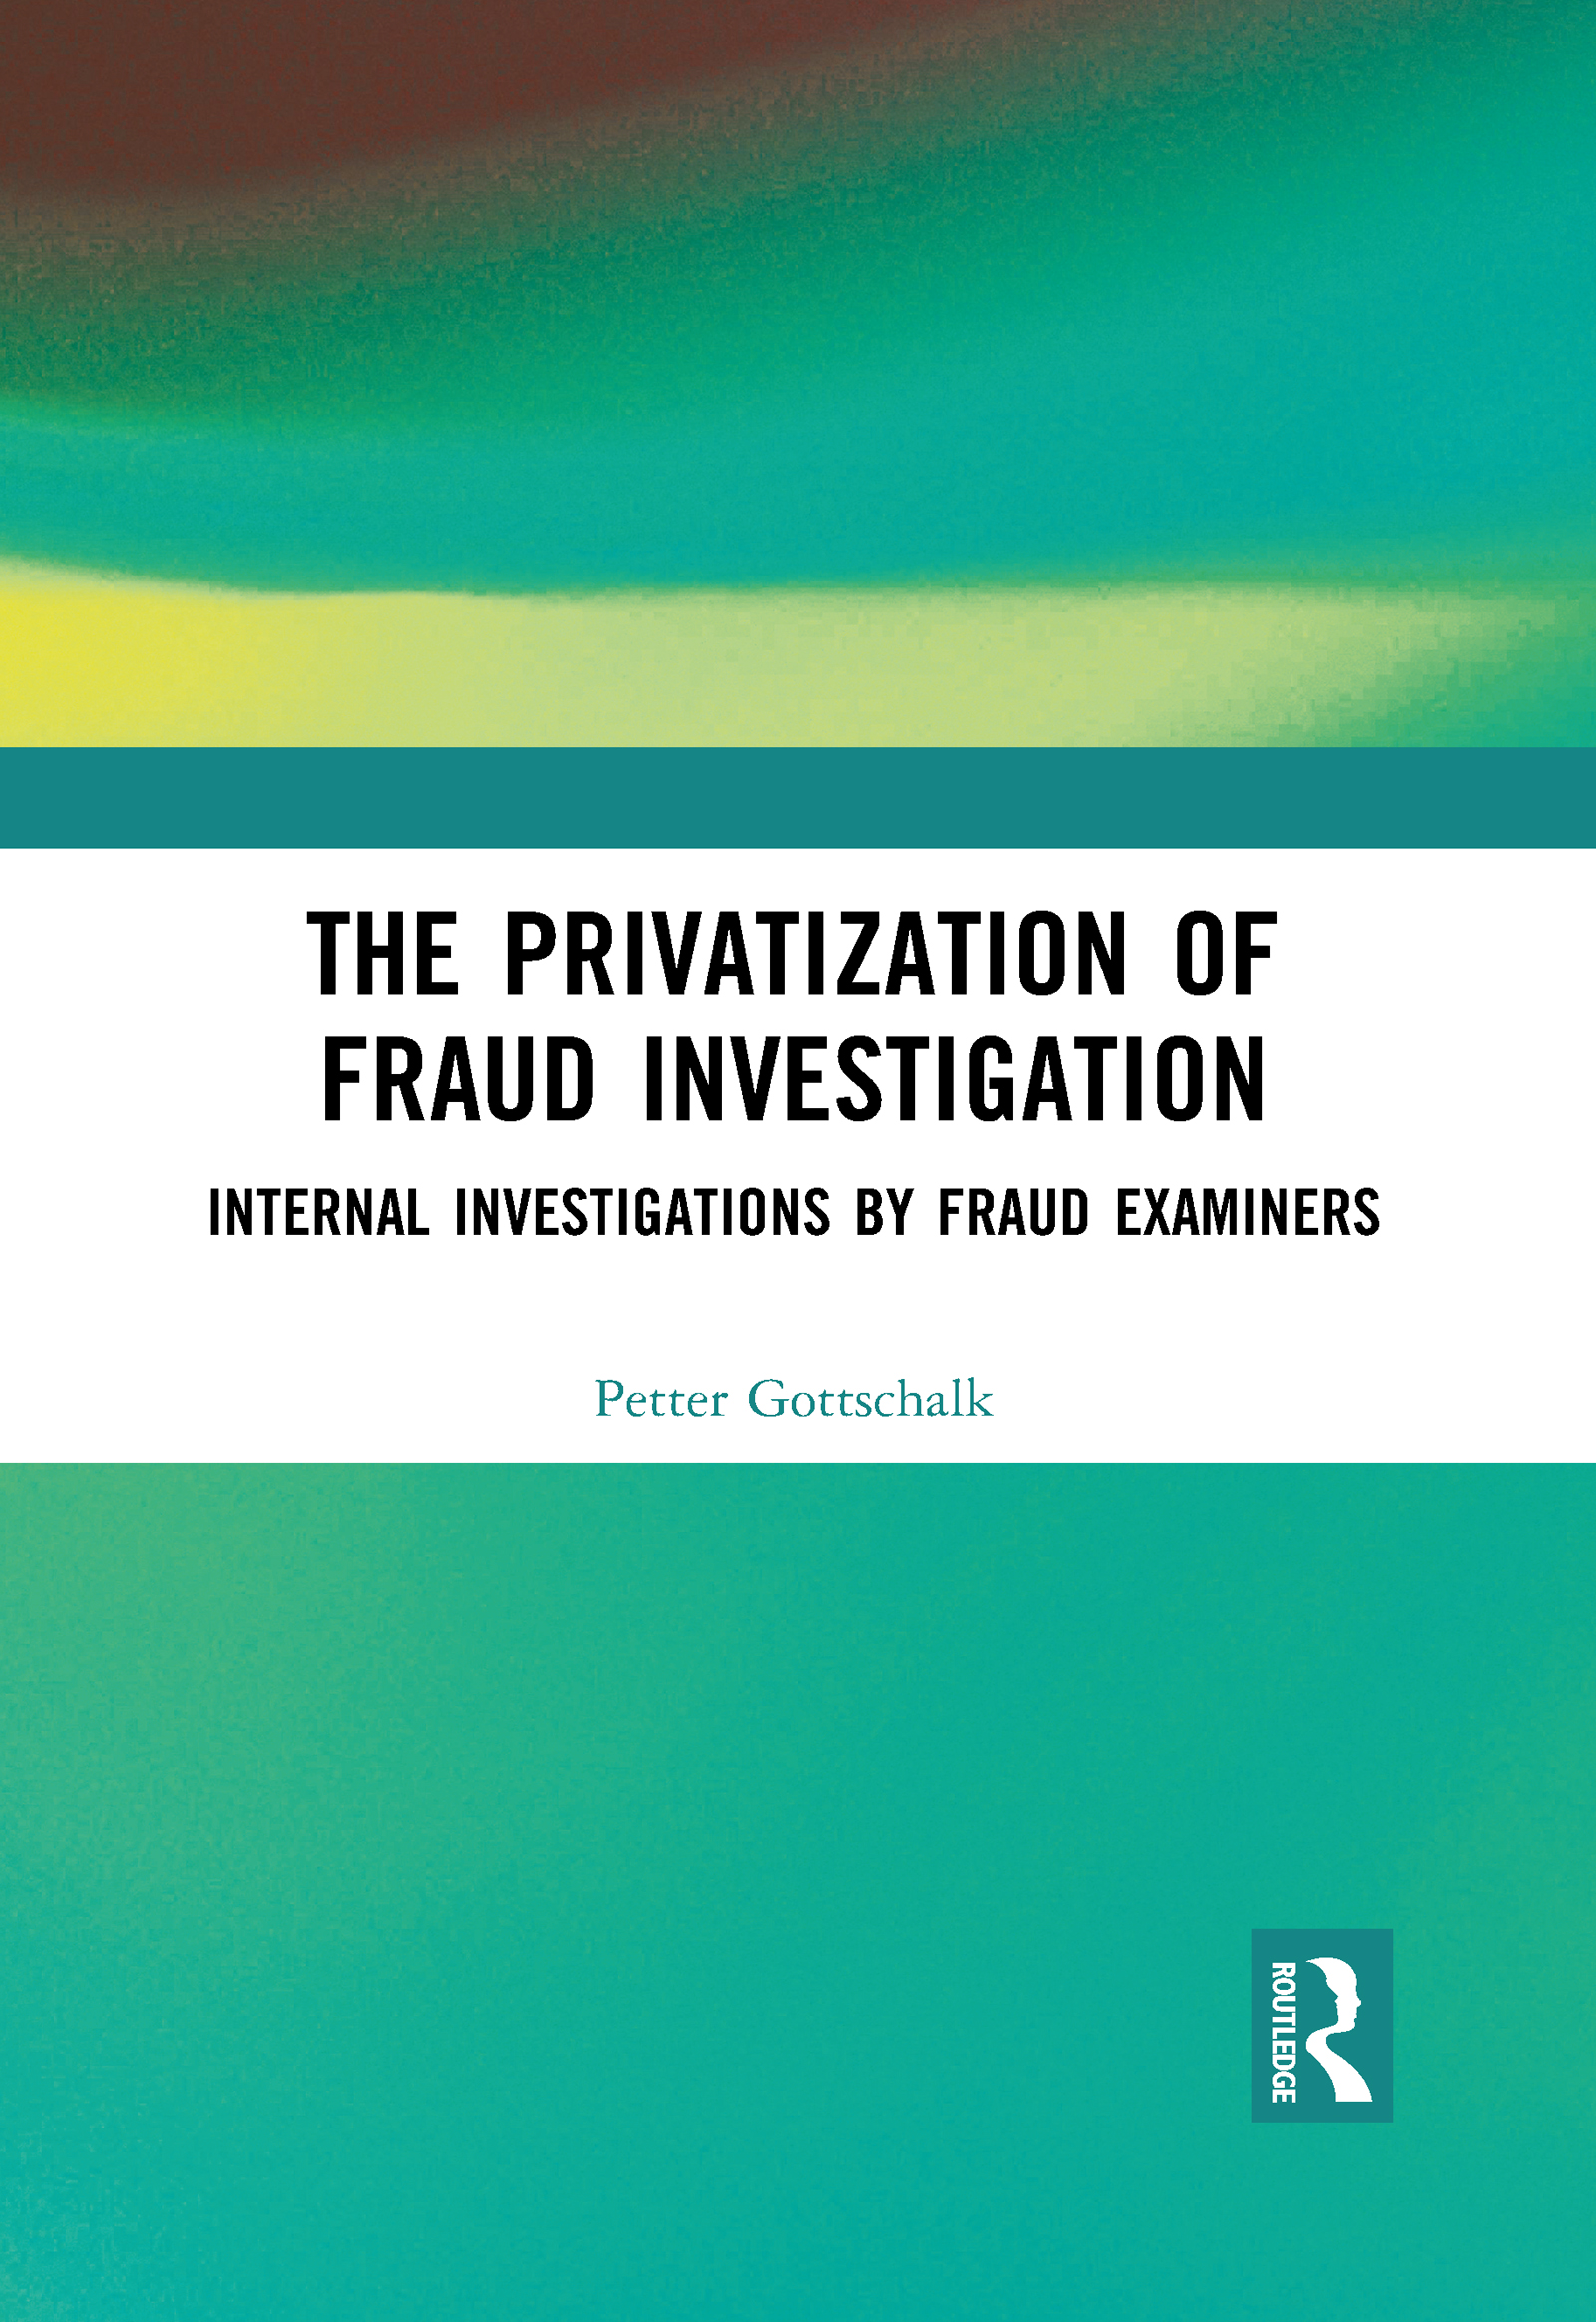 The Privatization of Fraud Investigation